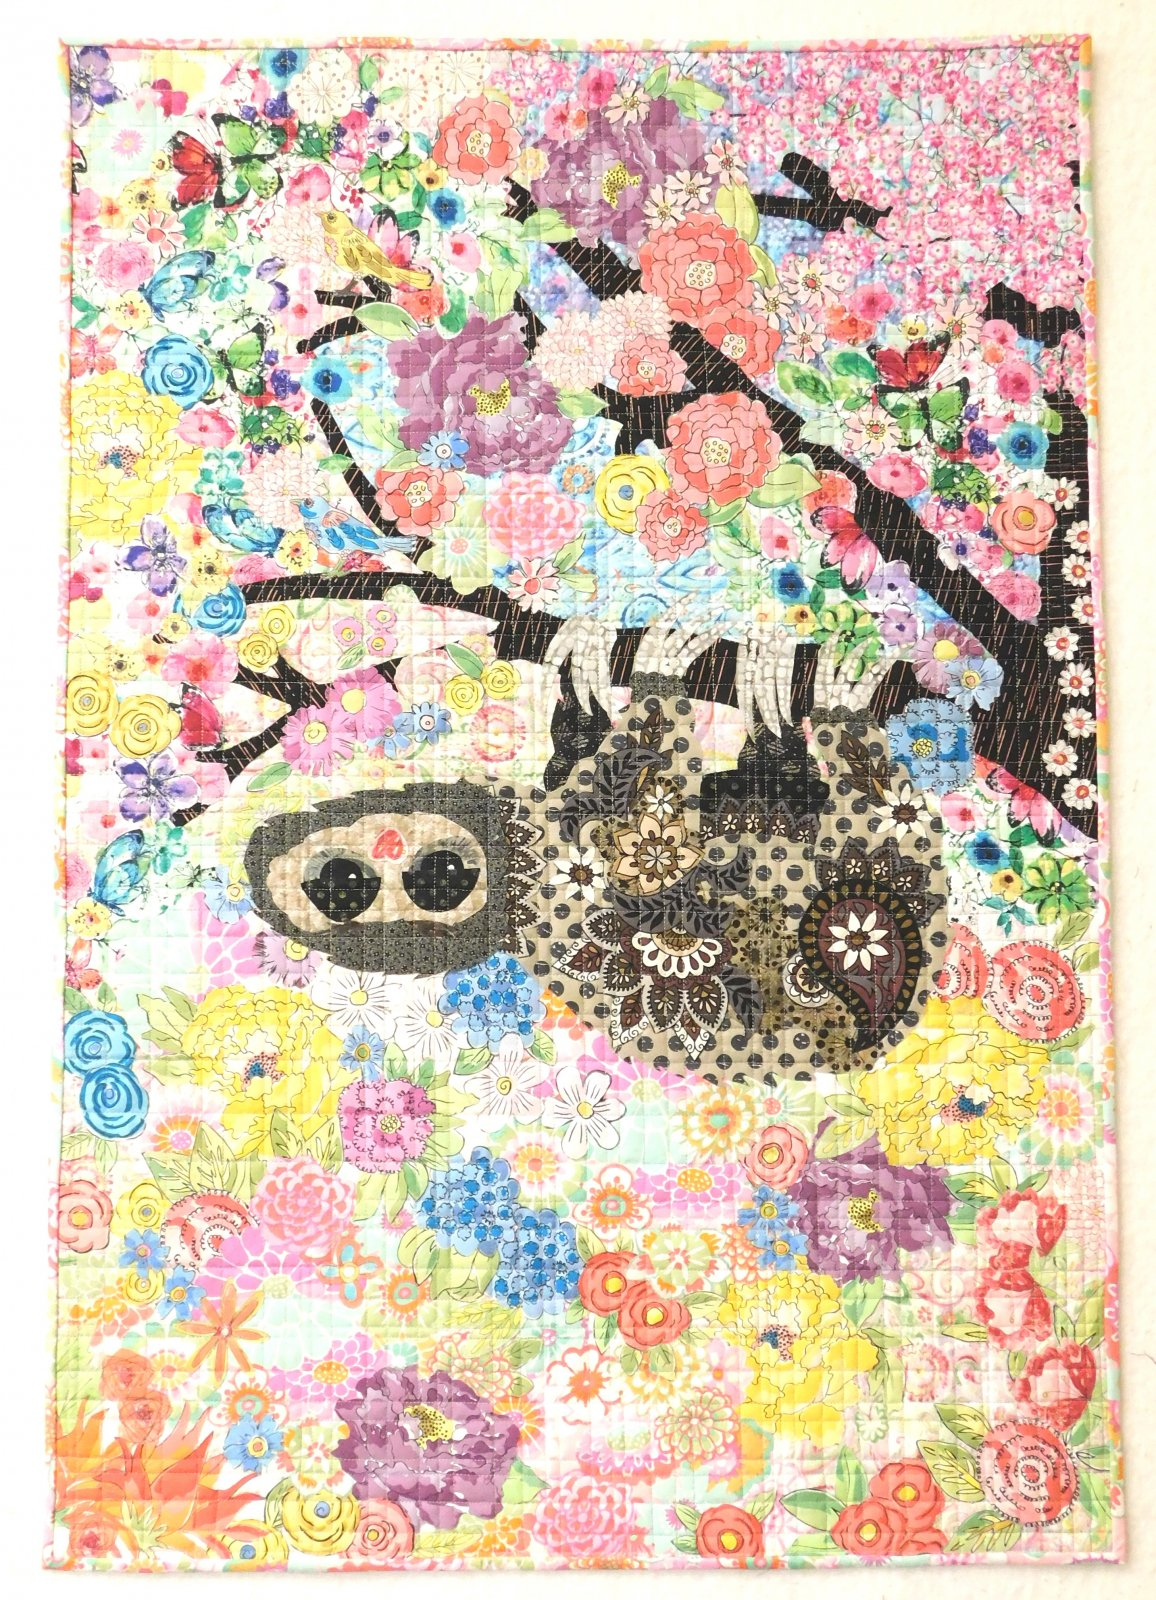 Cloth Sloth Collage Fabric Kit by The Quilters Lodge